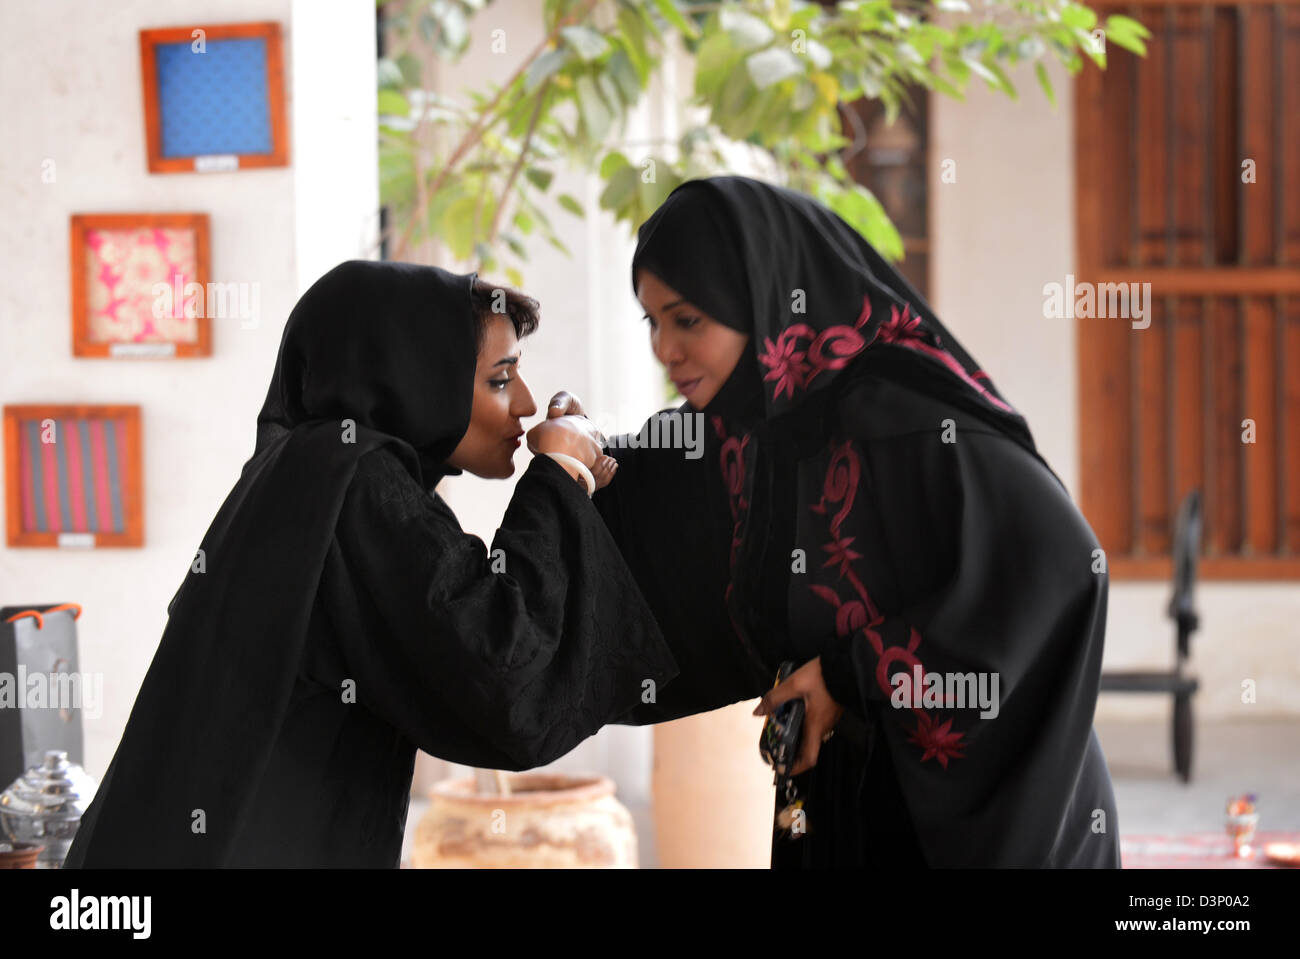 Two arab women greet each other with a suggest kiss on the hand two arab women greet each other with a suggest kiss on the hand kristyandbryce Choice Image